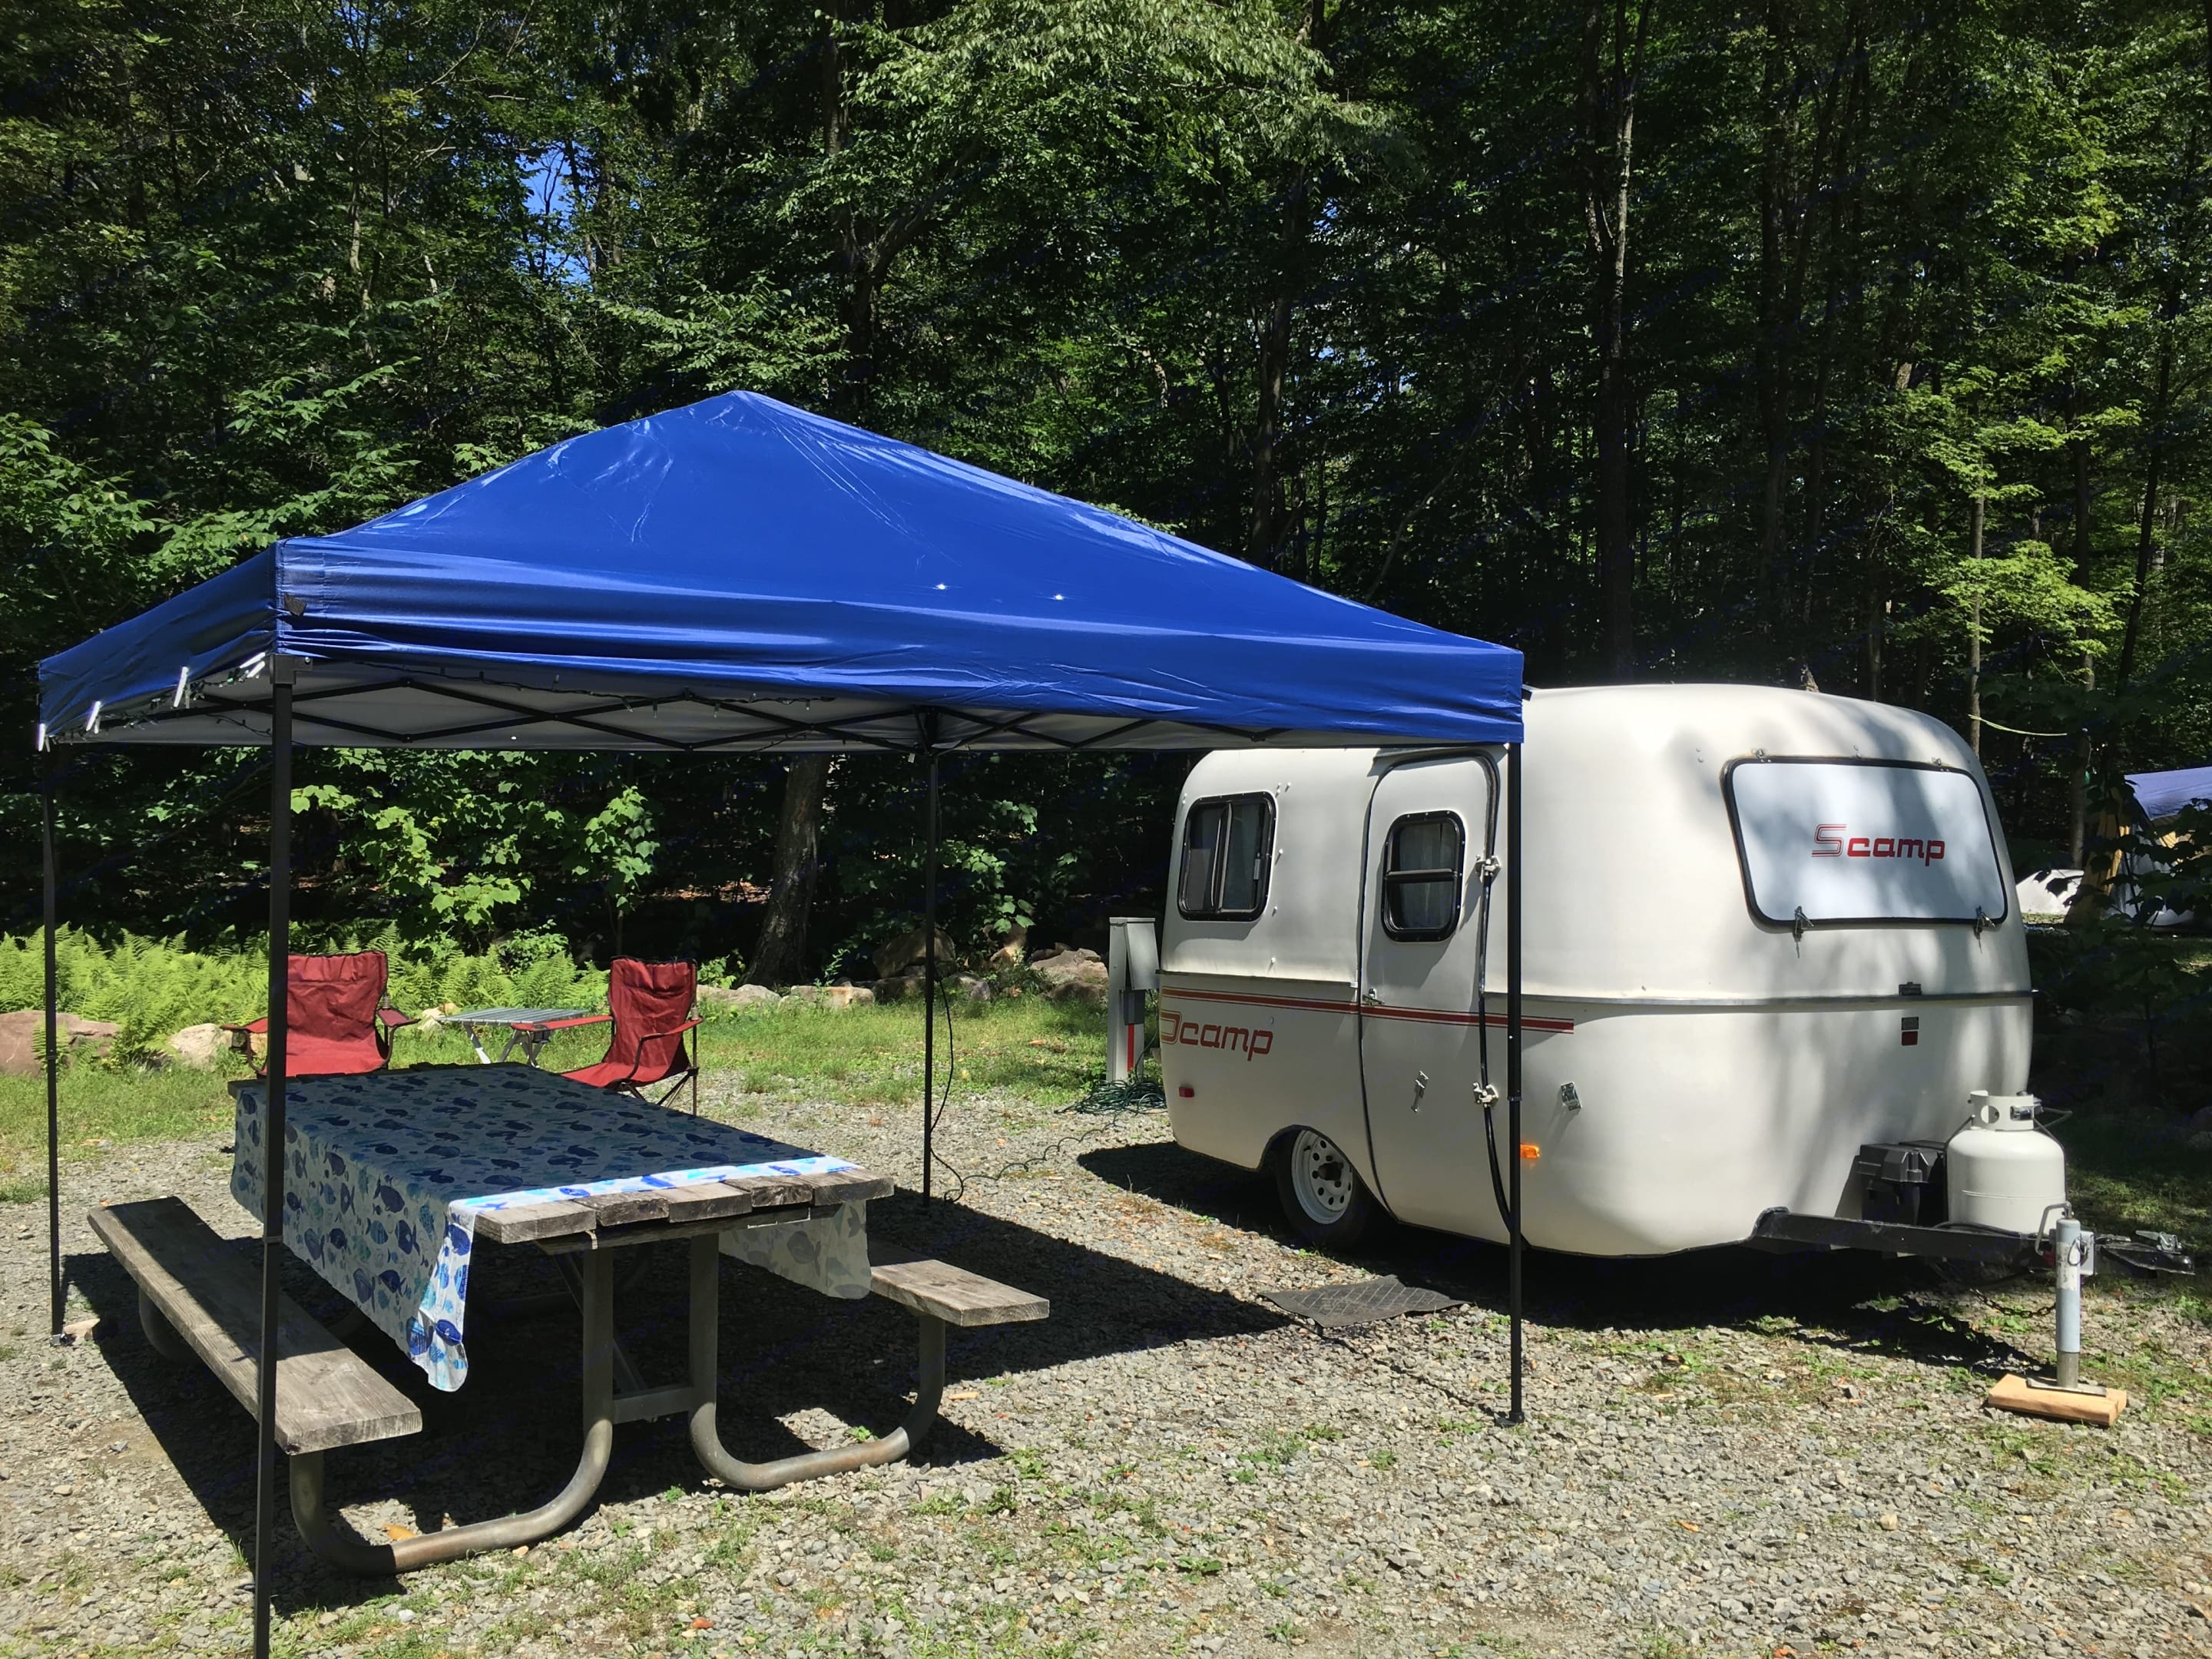 1985 Scamp All American trailer with pop up awning, camp chairs and table cloth - all included in rental.. Scamp 13' 1985